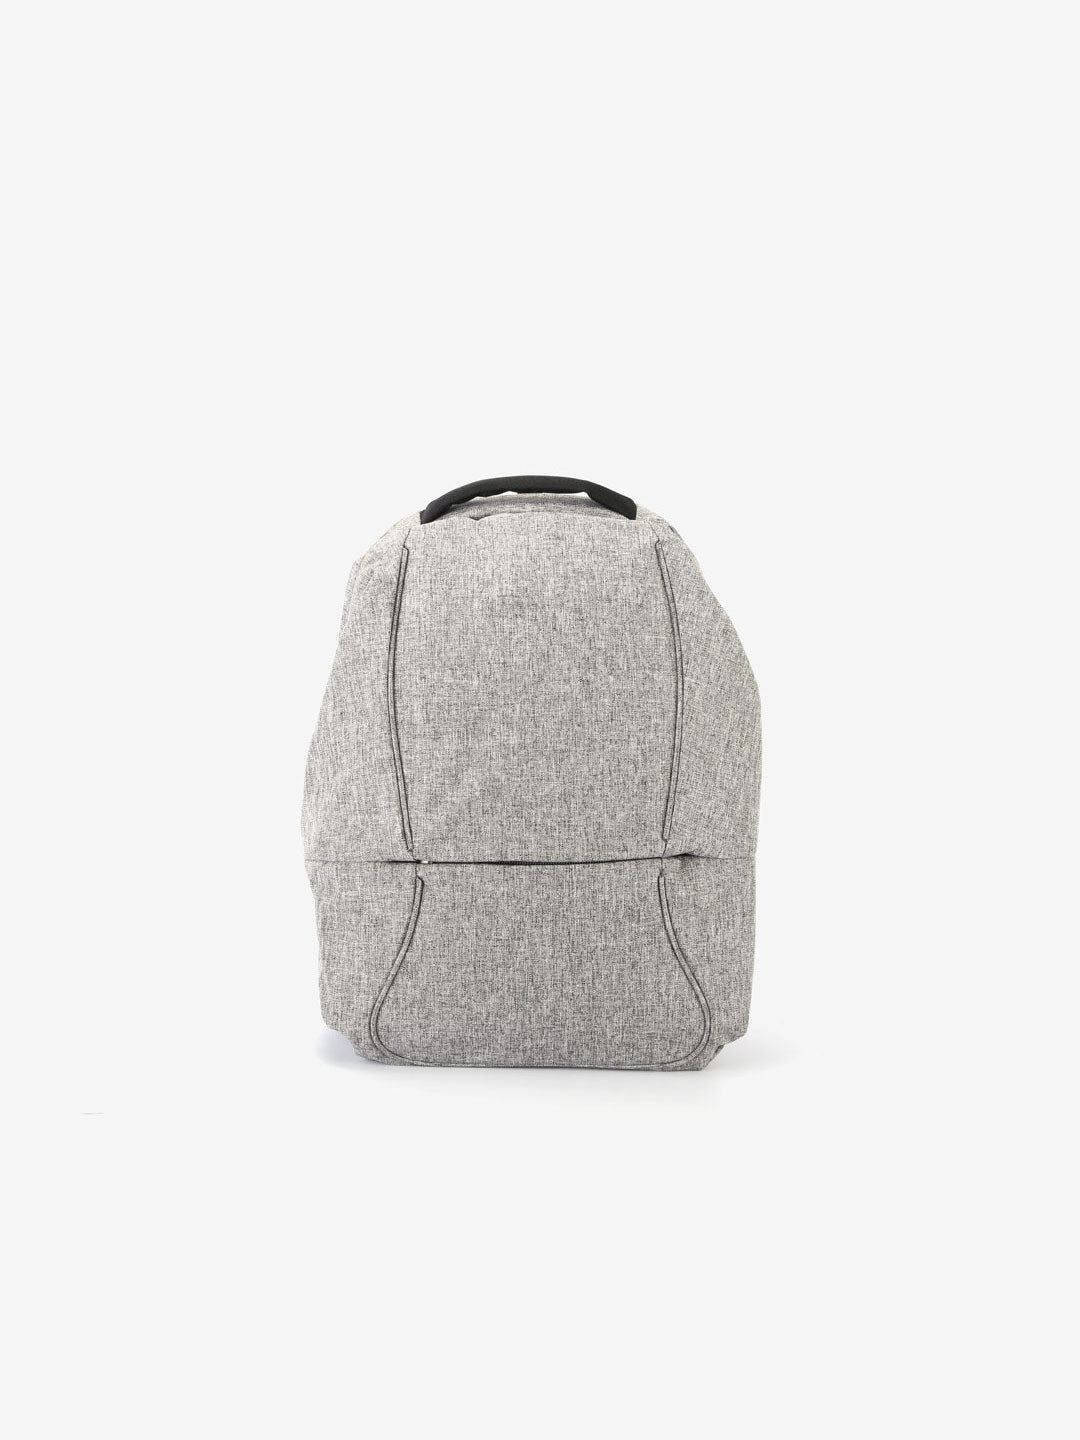 Scavenger in Pebble Grey